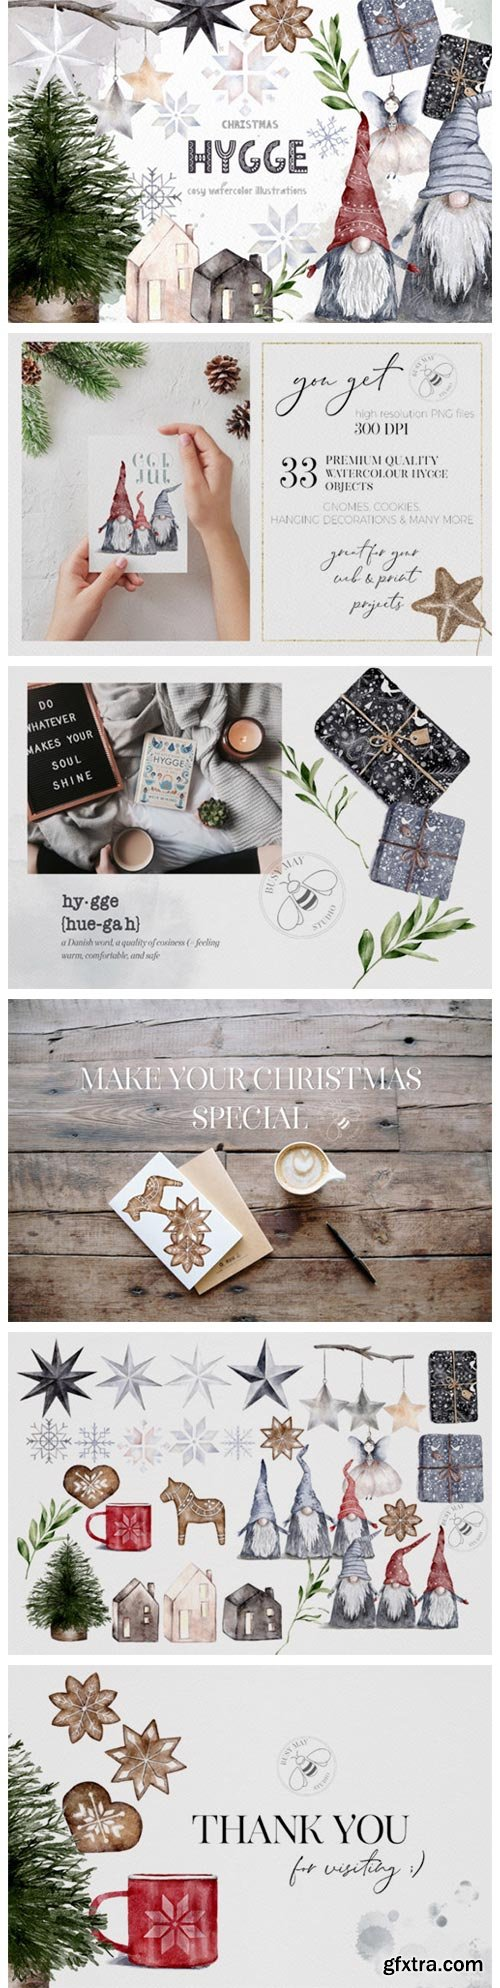 Hygge Christmas Watercolor Illustrations 6946028